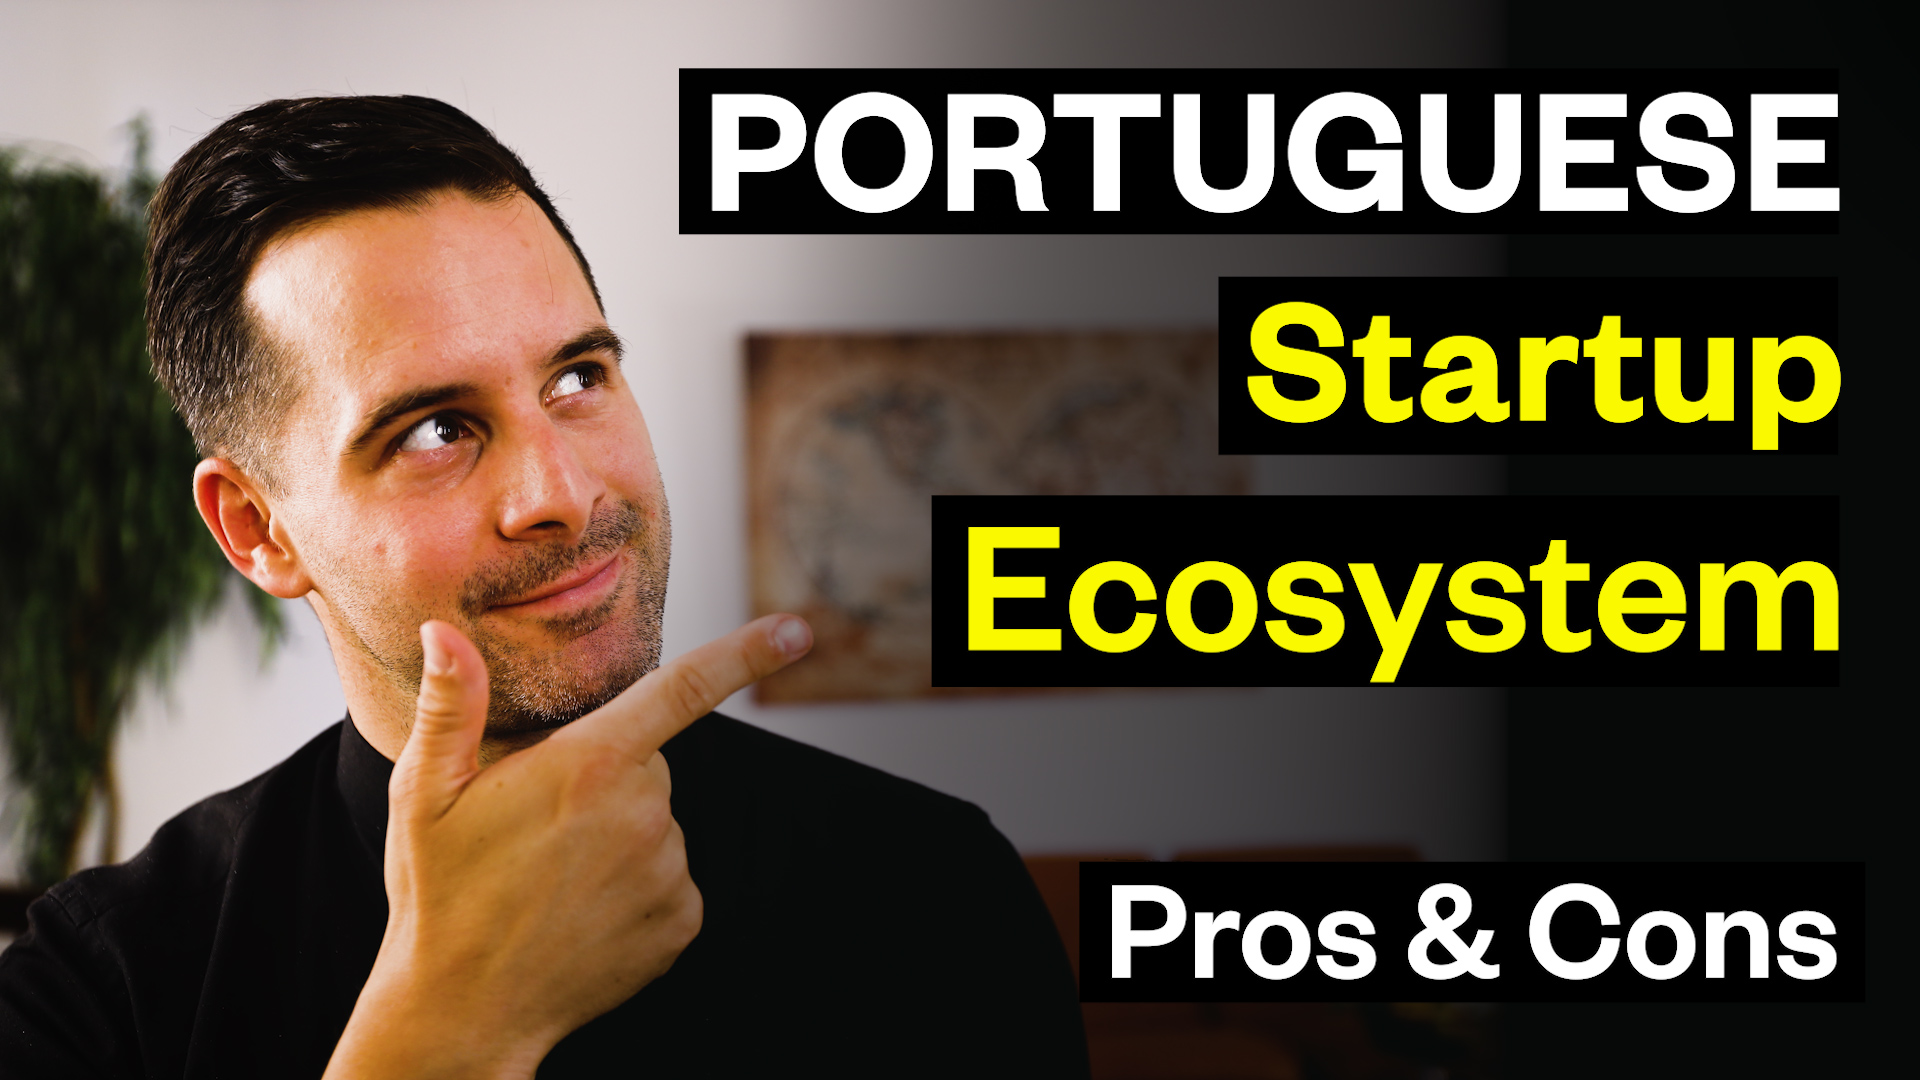 Portuguese startup ecosystem: Pros & cons for investors & founders